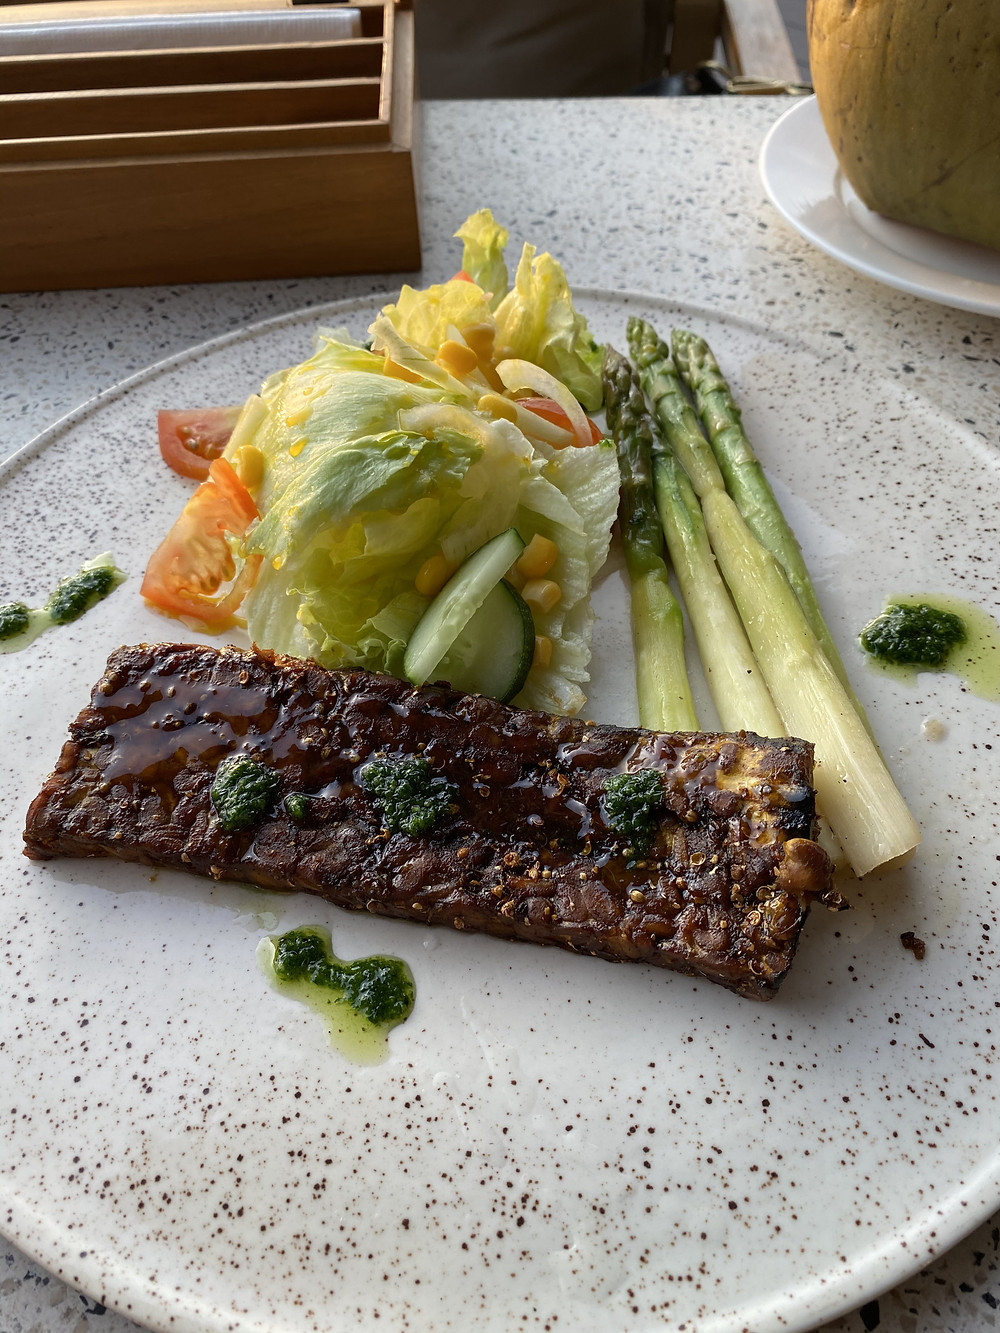 Natra Bintan:  tempeh steak with asparagus and a side salad